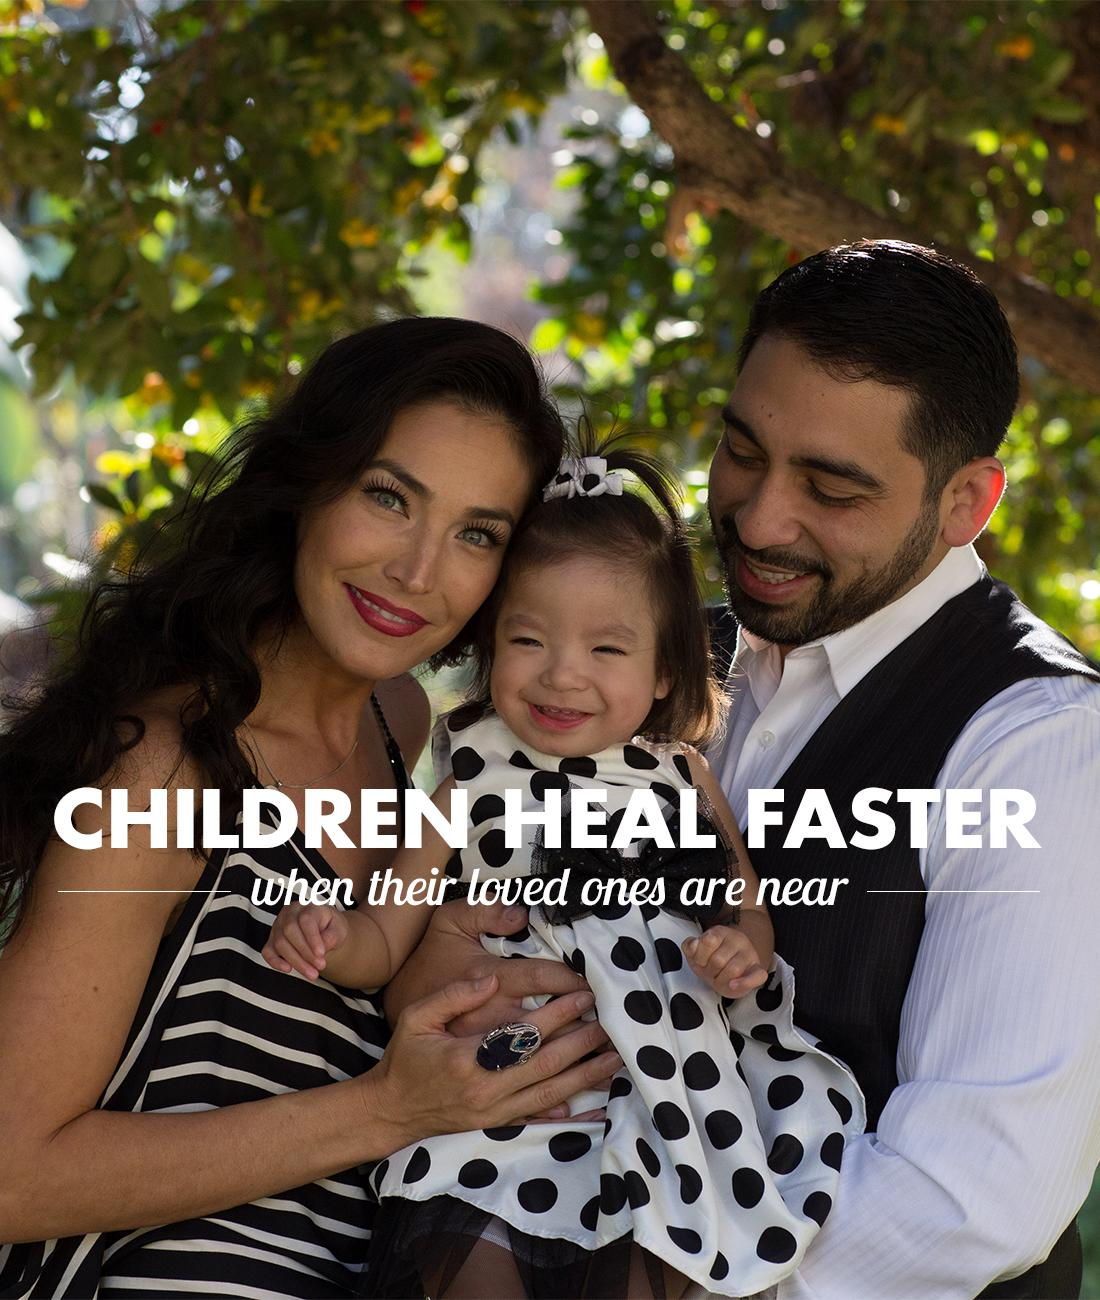 Children Heal Faster – Mission